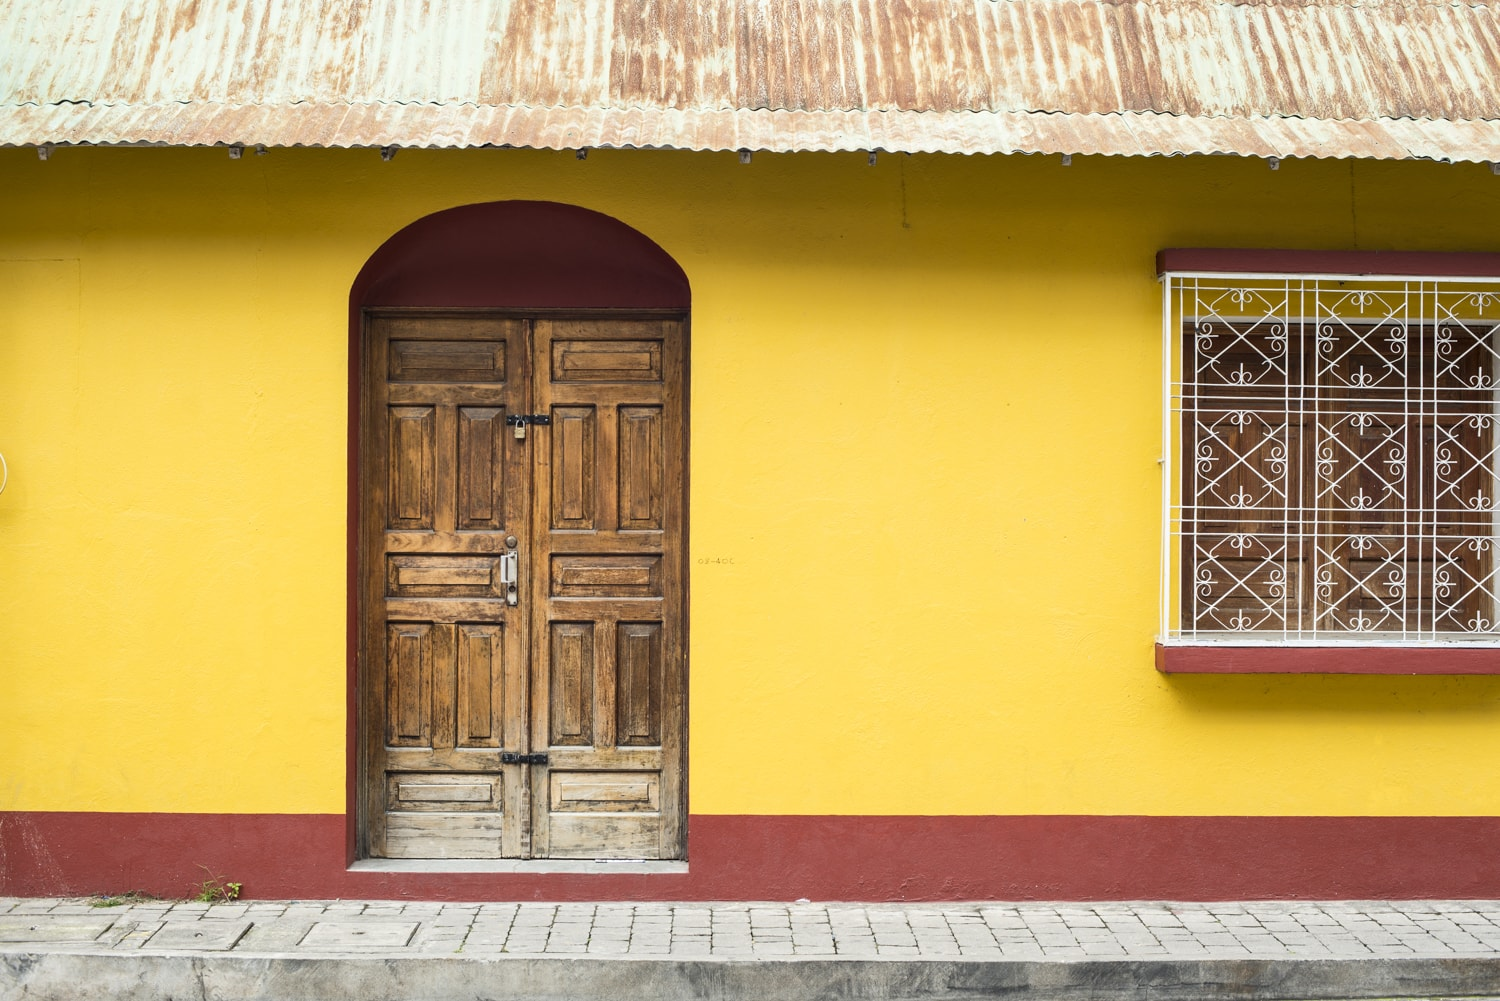 Beautiful Entryways and Windows in Guatemala